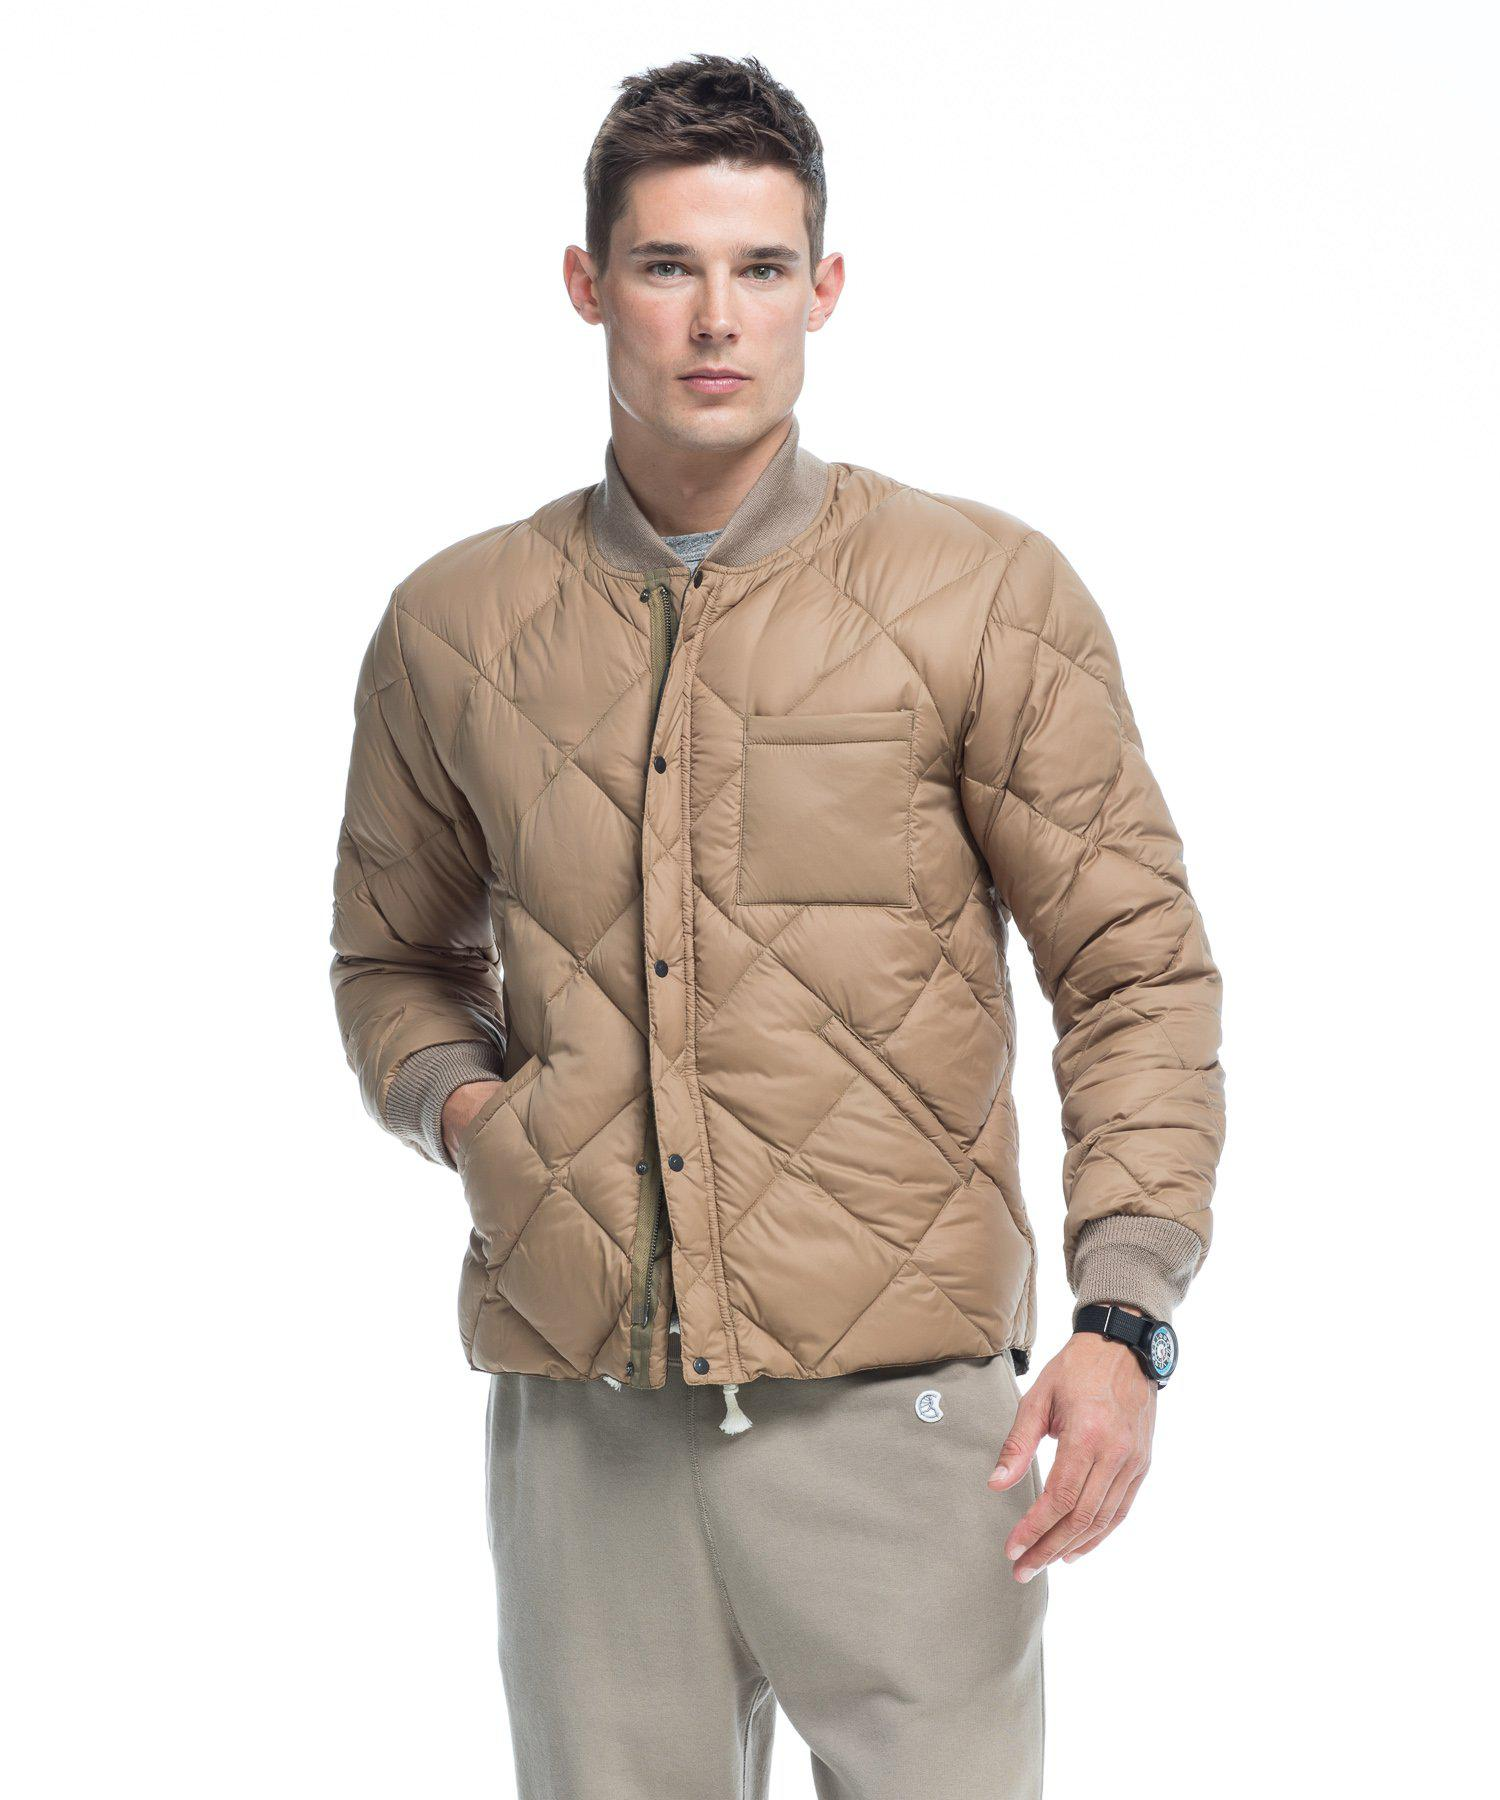 Todd Synder X Champion Synthetic Liner Down Jacket In Camel in Beige (Natural) for Men